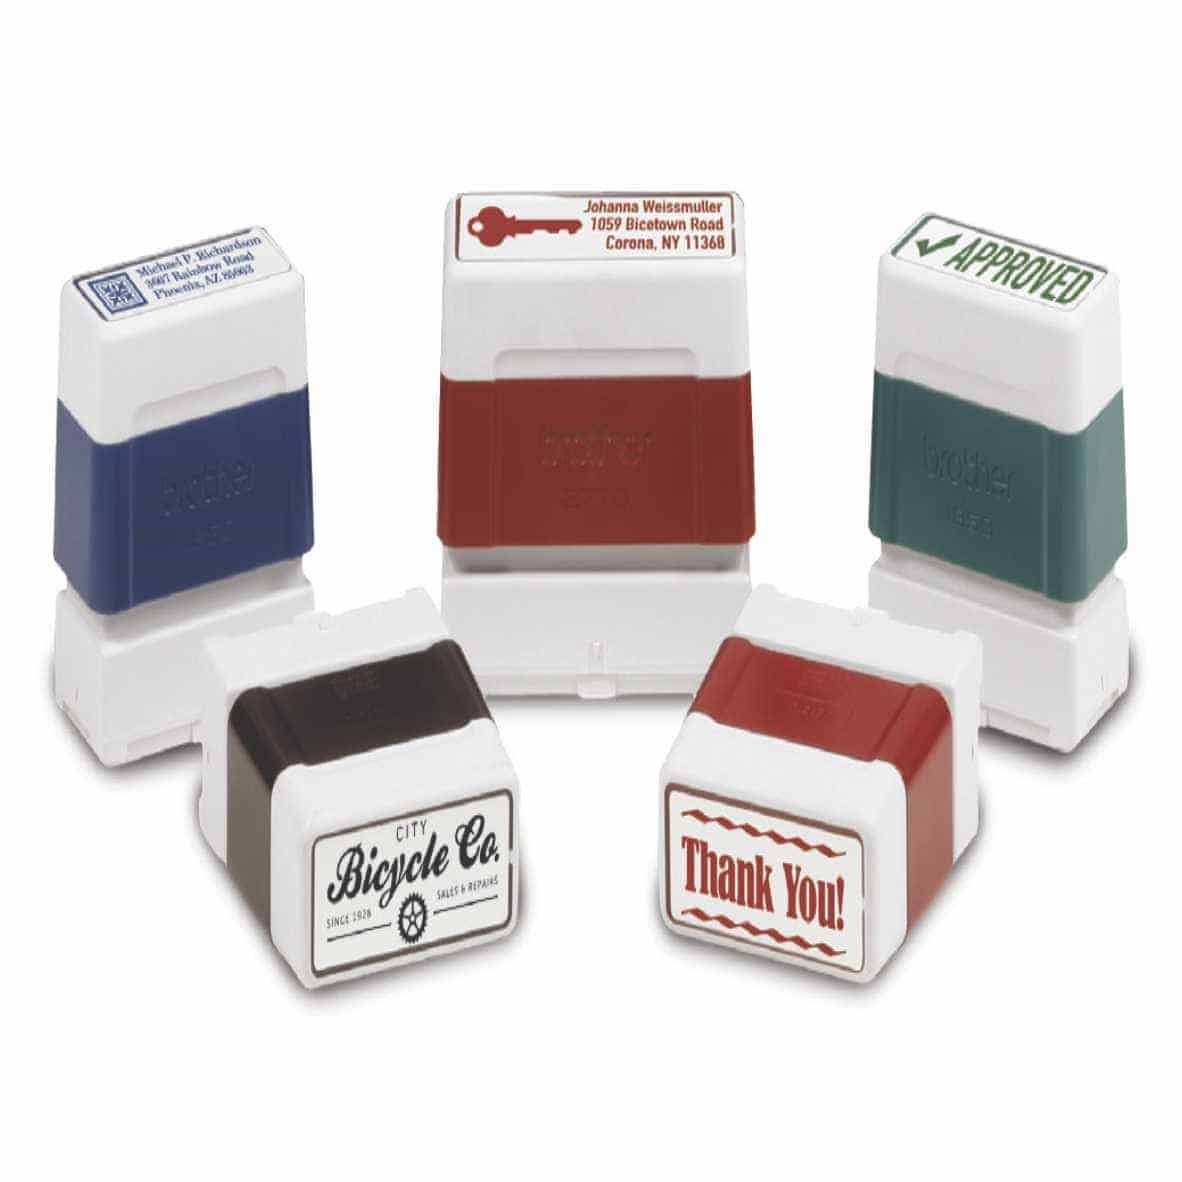 Rubber stamp sizes image